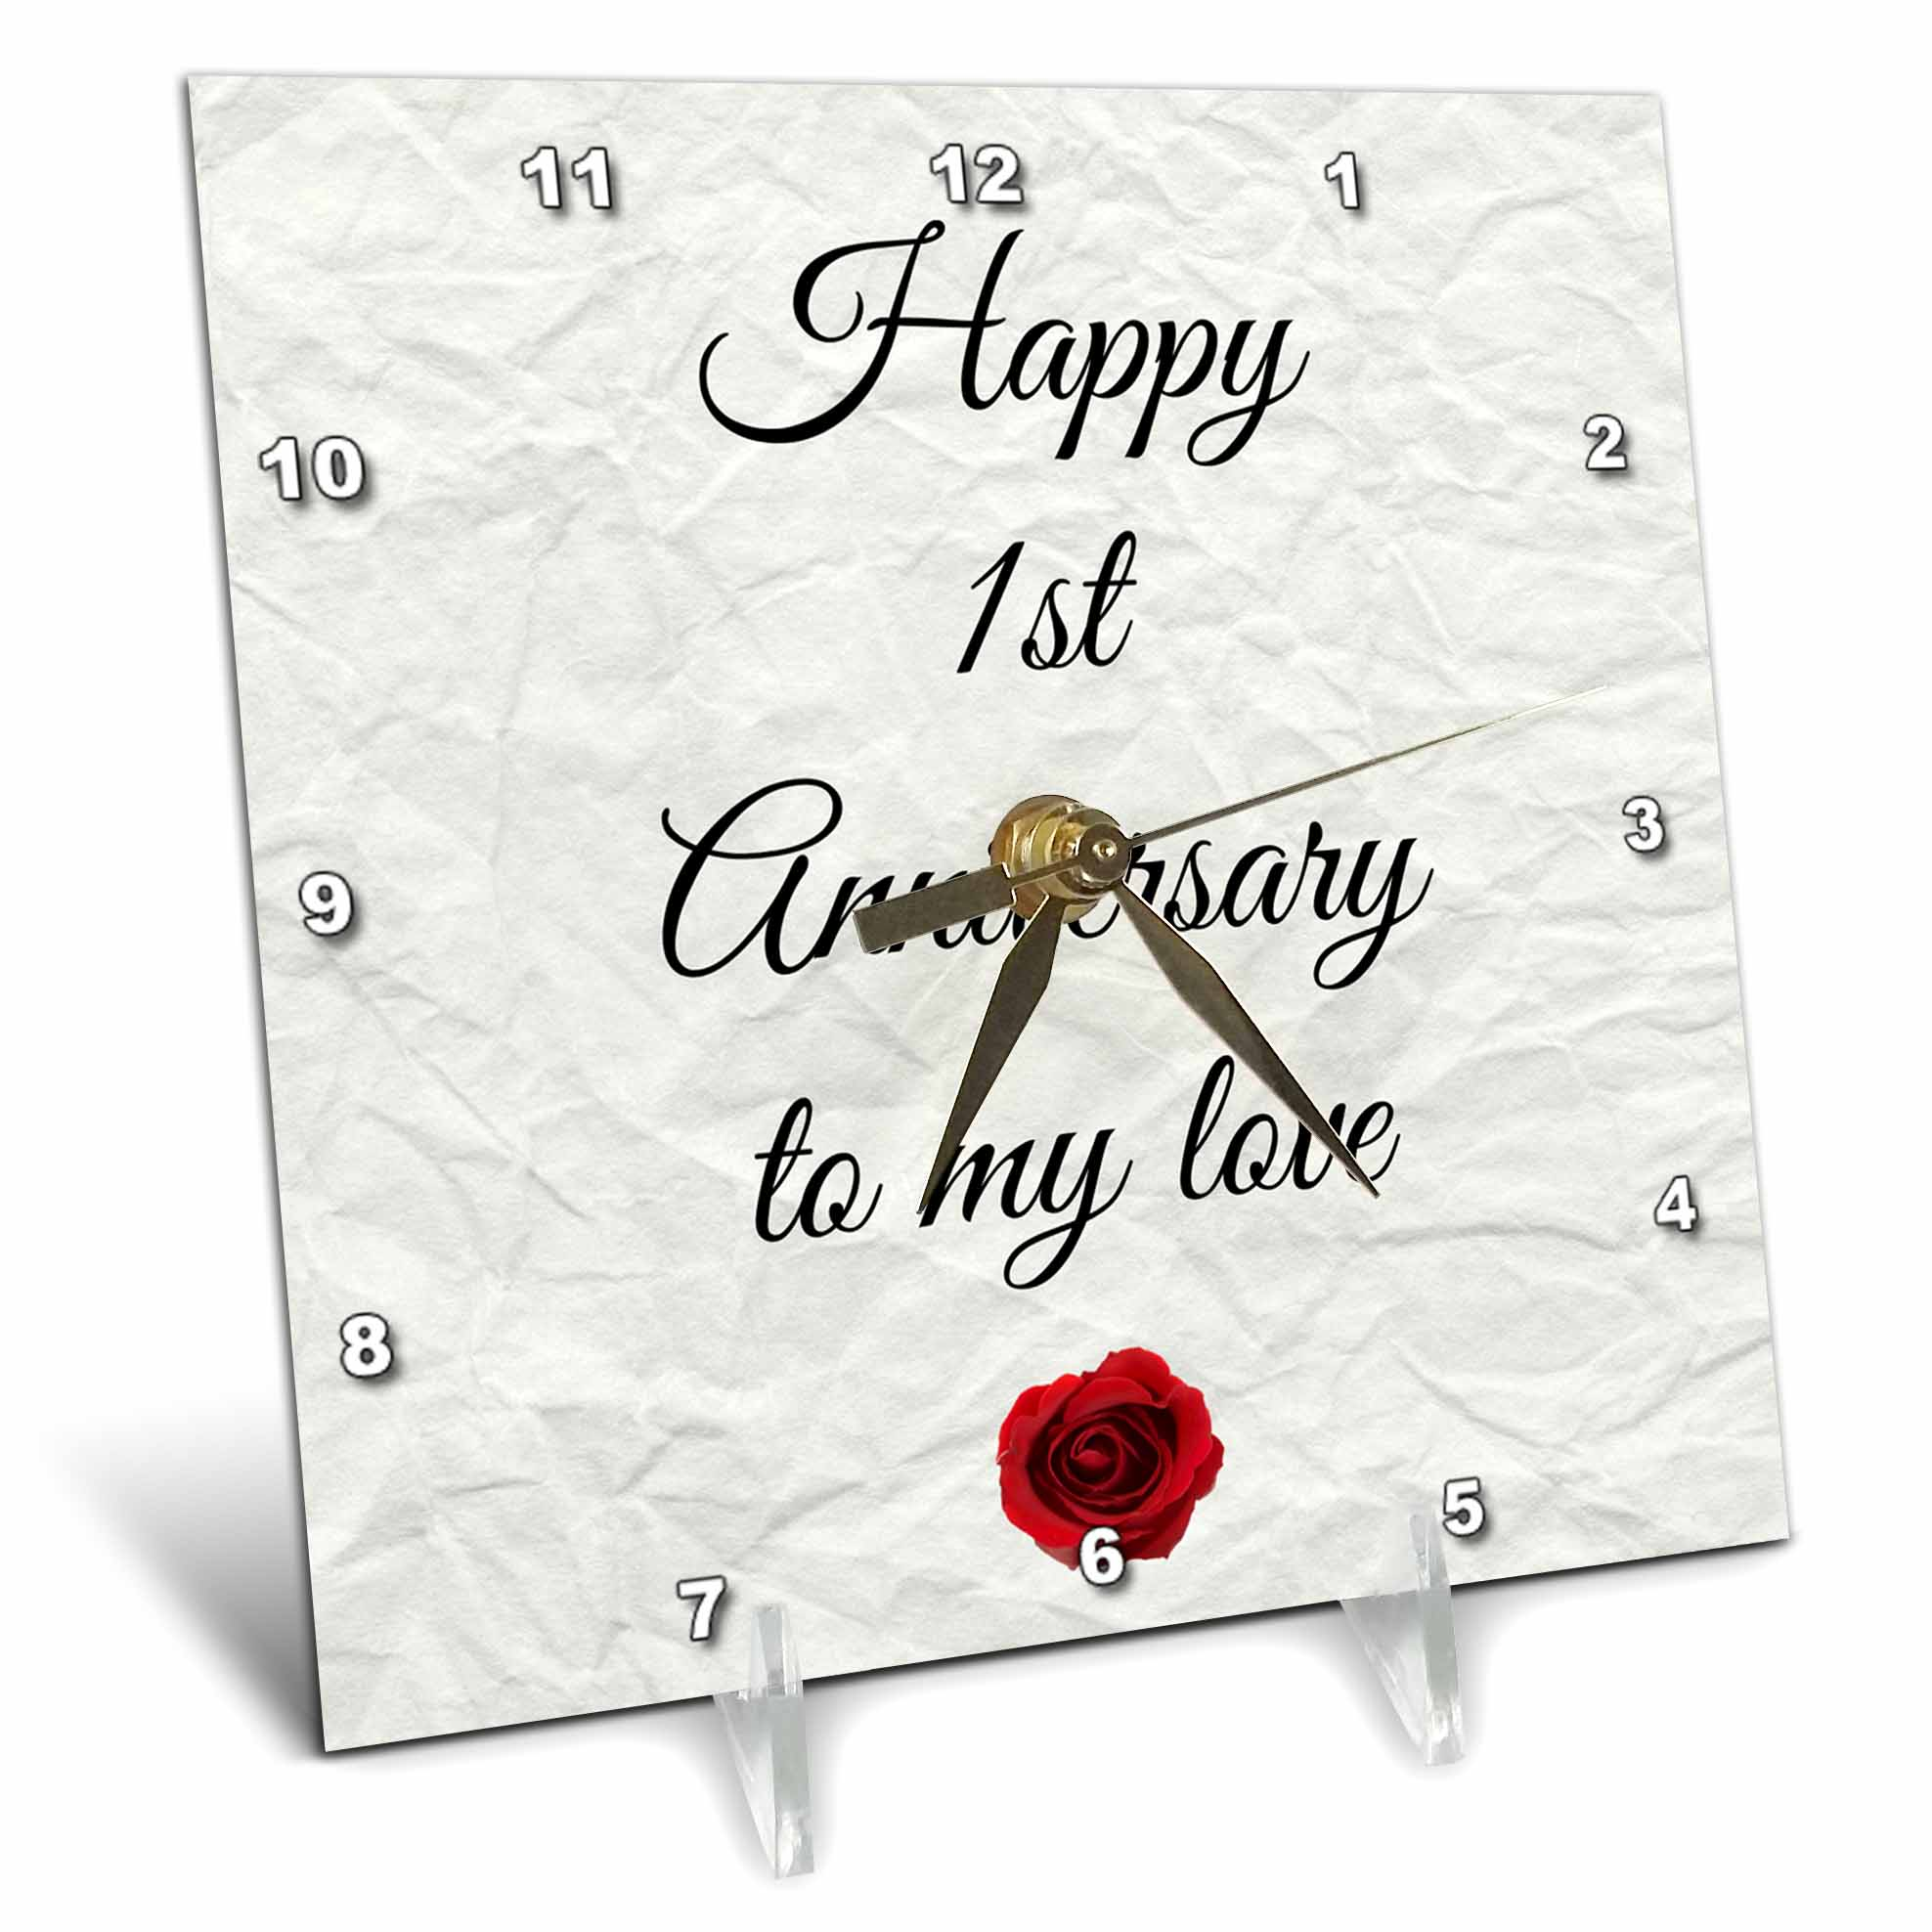 3dRose Happy 1st Anniversary to my love on faux paper-like background, Desk Clock, 6 by 6-inch by 3dRose